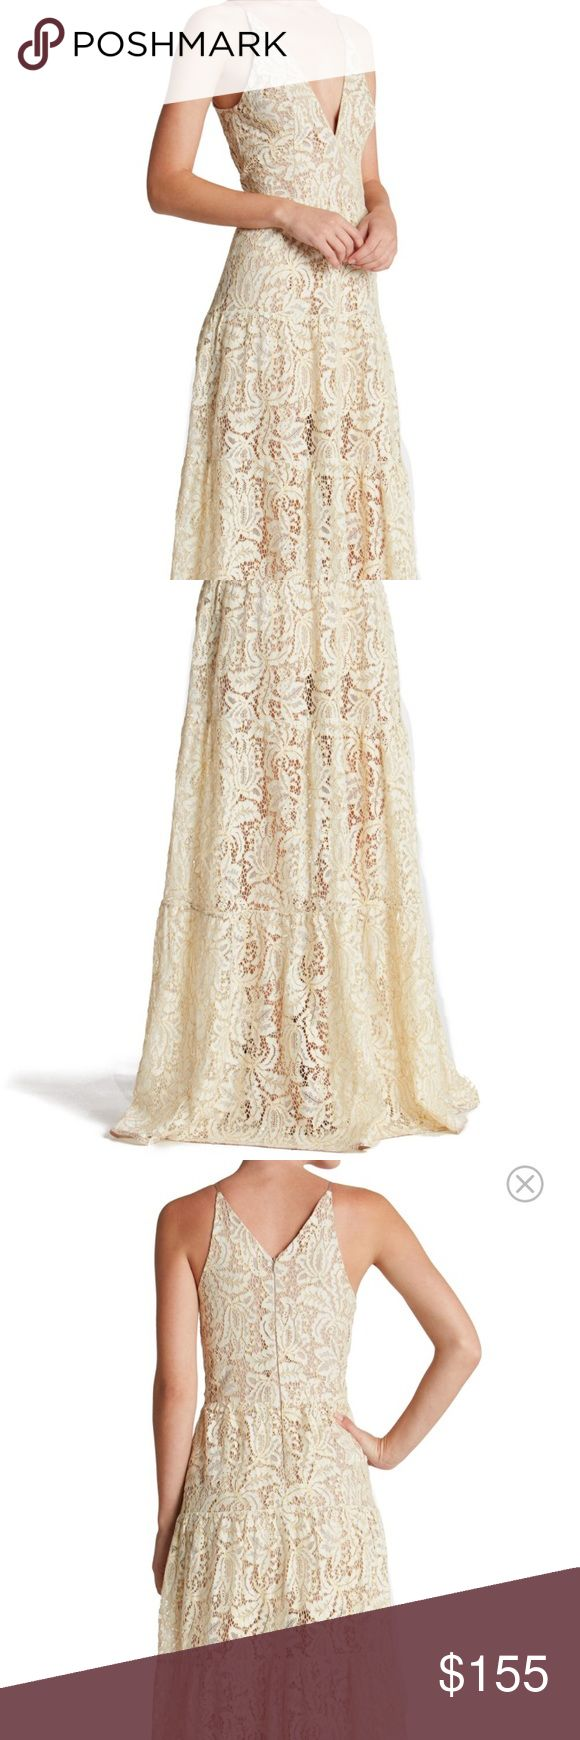 Boho Lace Fit &Flare Maxi Gown Ethereal, romantic, bohemian floral lace gown,  NWT Melina. Lightweight and floating - great quality floral lace with gold threading throughout. Ivory color (last pic shows color contrast (white paper behind to show color). Perfect as a wedding dress, reception, bridal occasion, rehearsal, prom, special event, or formal. Nude underslip and then sheer - but not too revealing - from above the knee to hem. Runs small - most gals size up. Happy to post measurements…